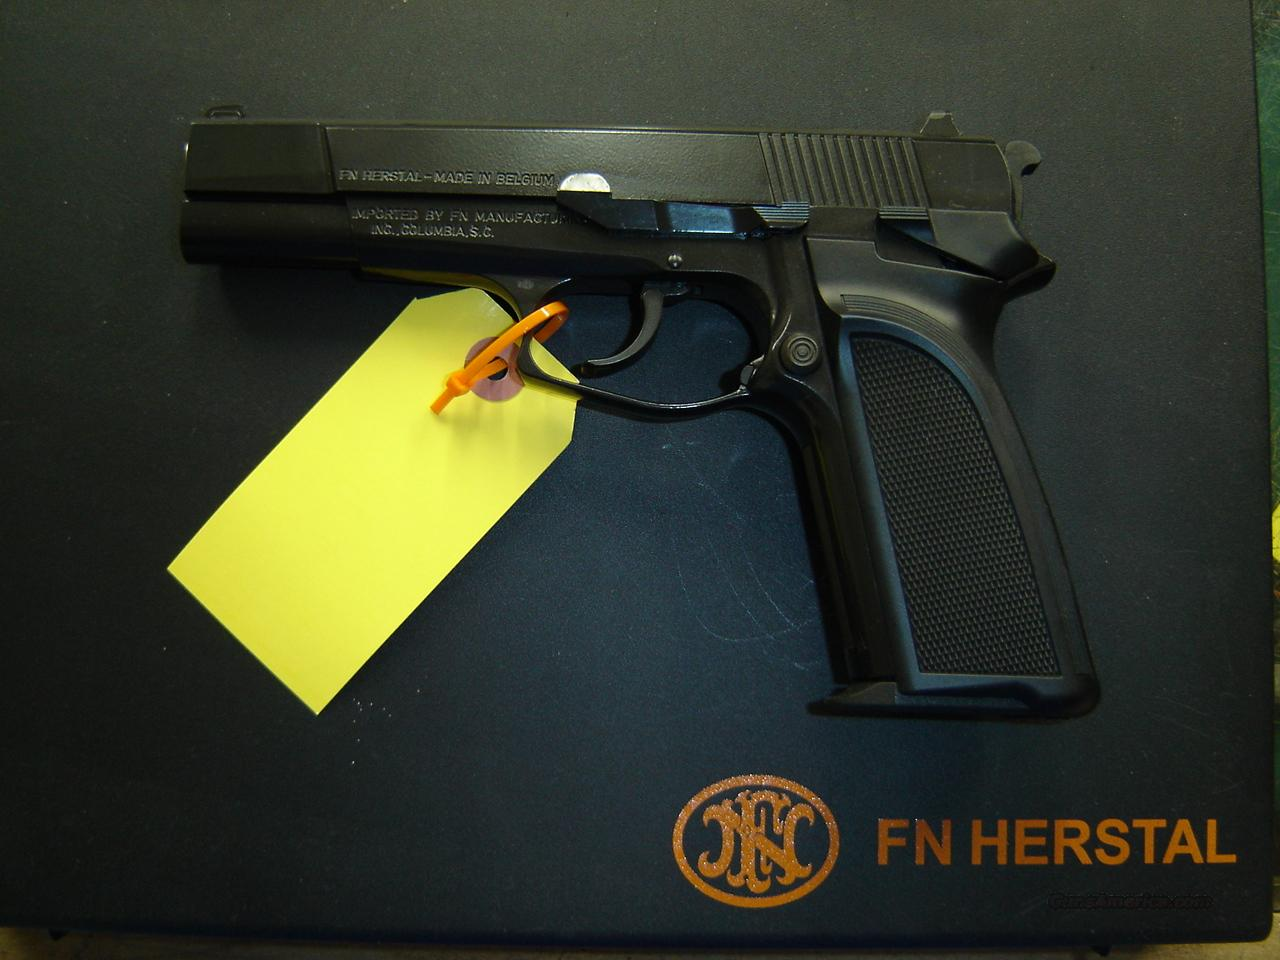 FN Herstal BDA9 **PRICE REDUCED**  Guns > Pistols > FNH - Fabrique Nationale (FN) Pistols > High Power Type